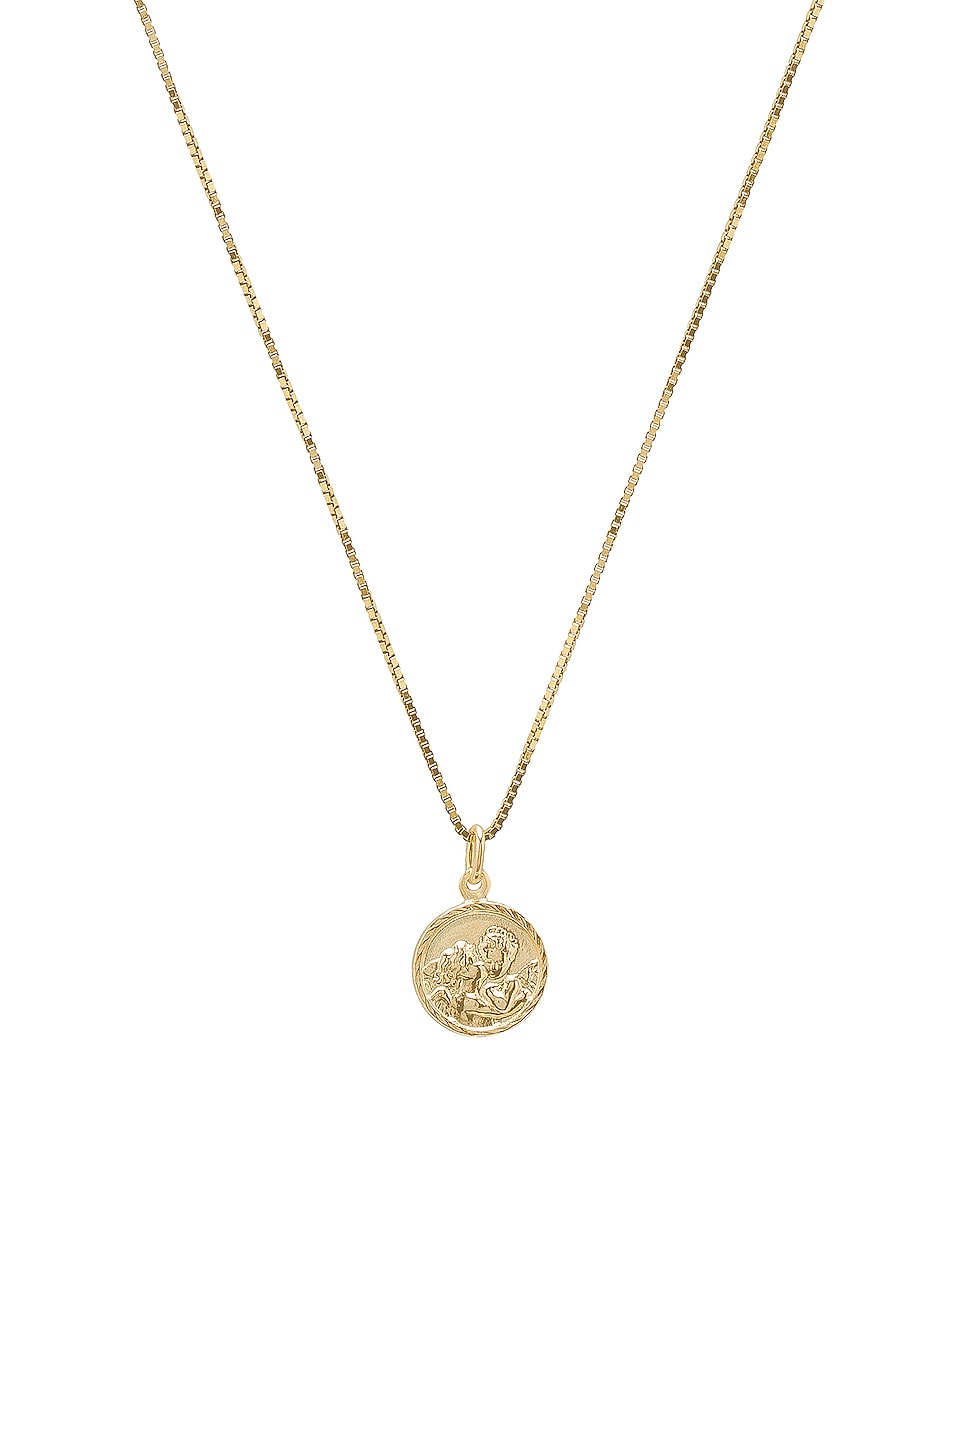 THE M JEWELERS NY Tiny Angel Pendant Necklace in Metallic Gold